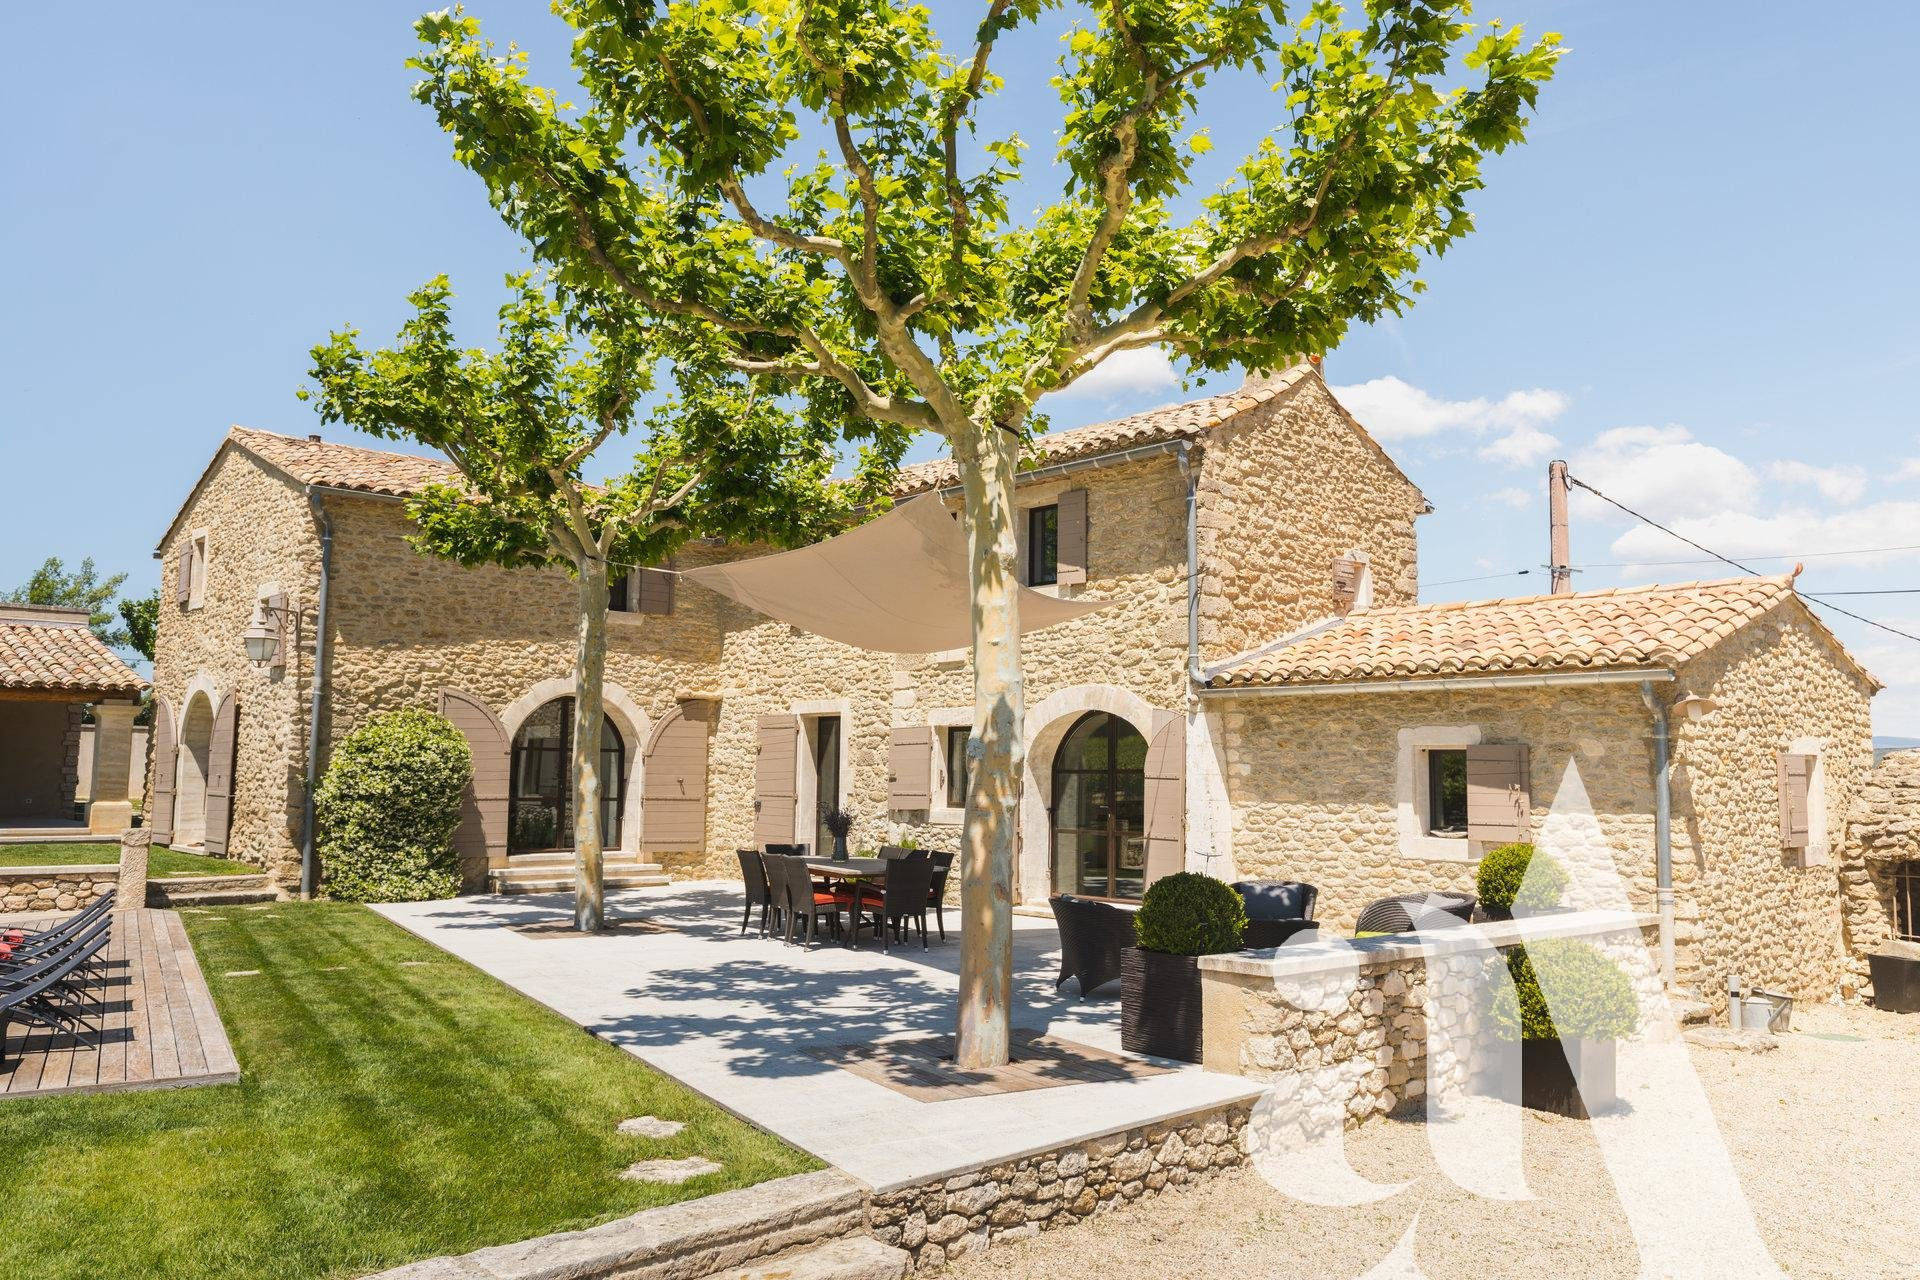 MAS NICE VIEW- - LUBERON - OPPEDES - 4 bedrooms- 8 people